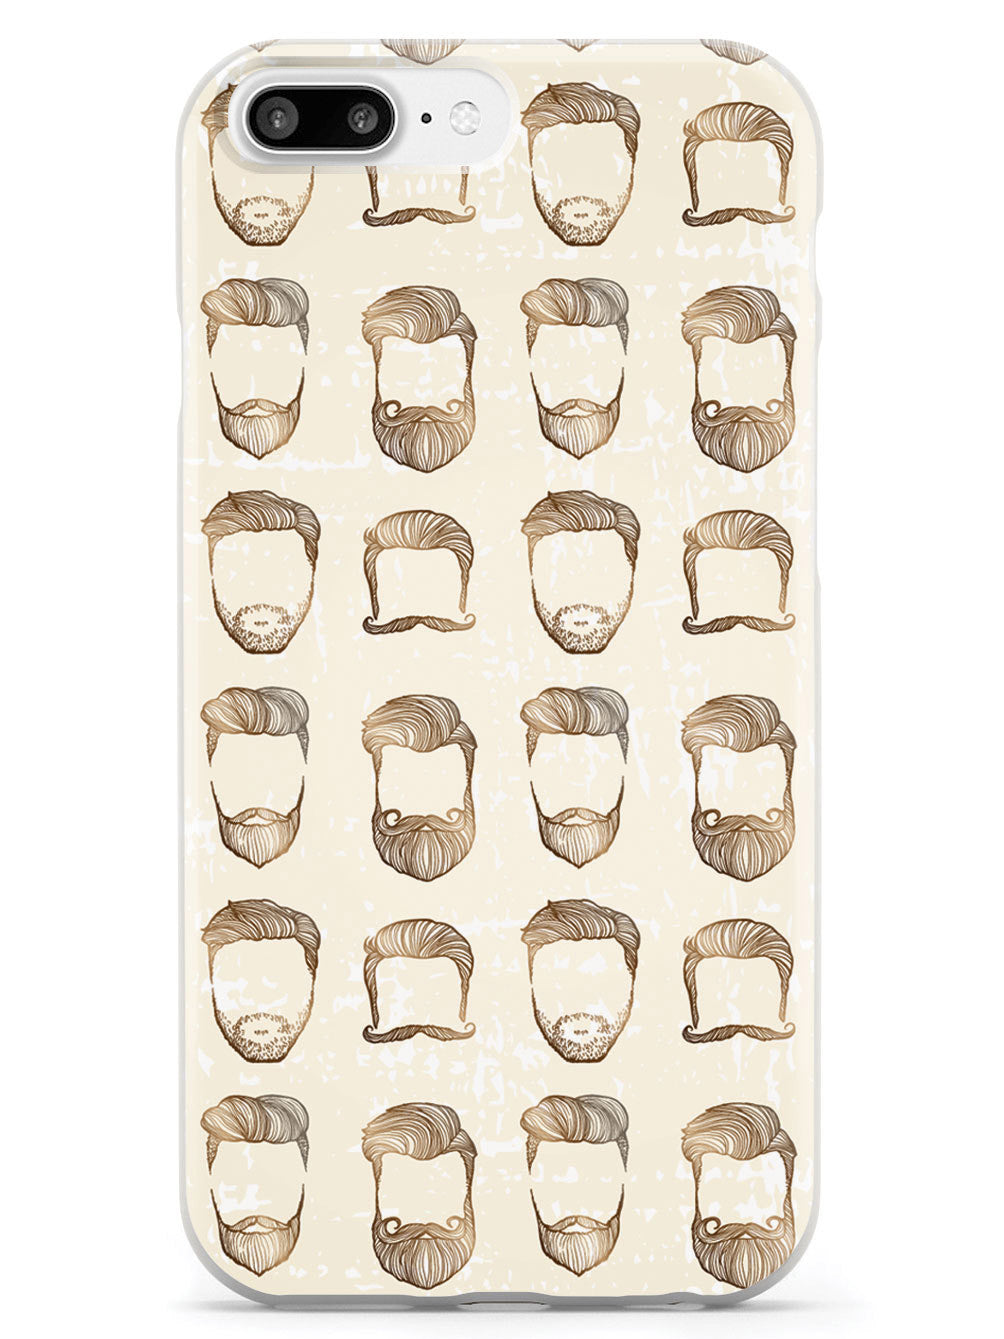 Men's Hairstyles, Magnificent Beards - Vintage Case